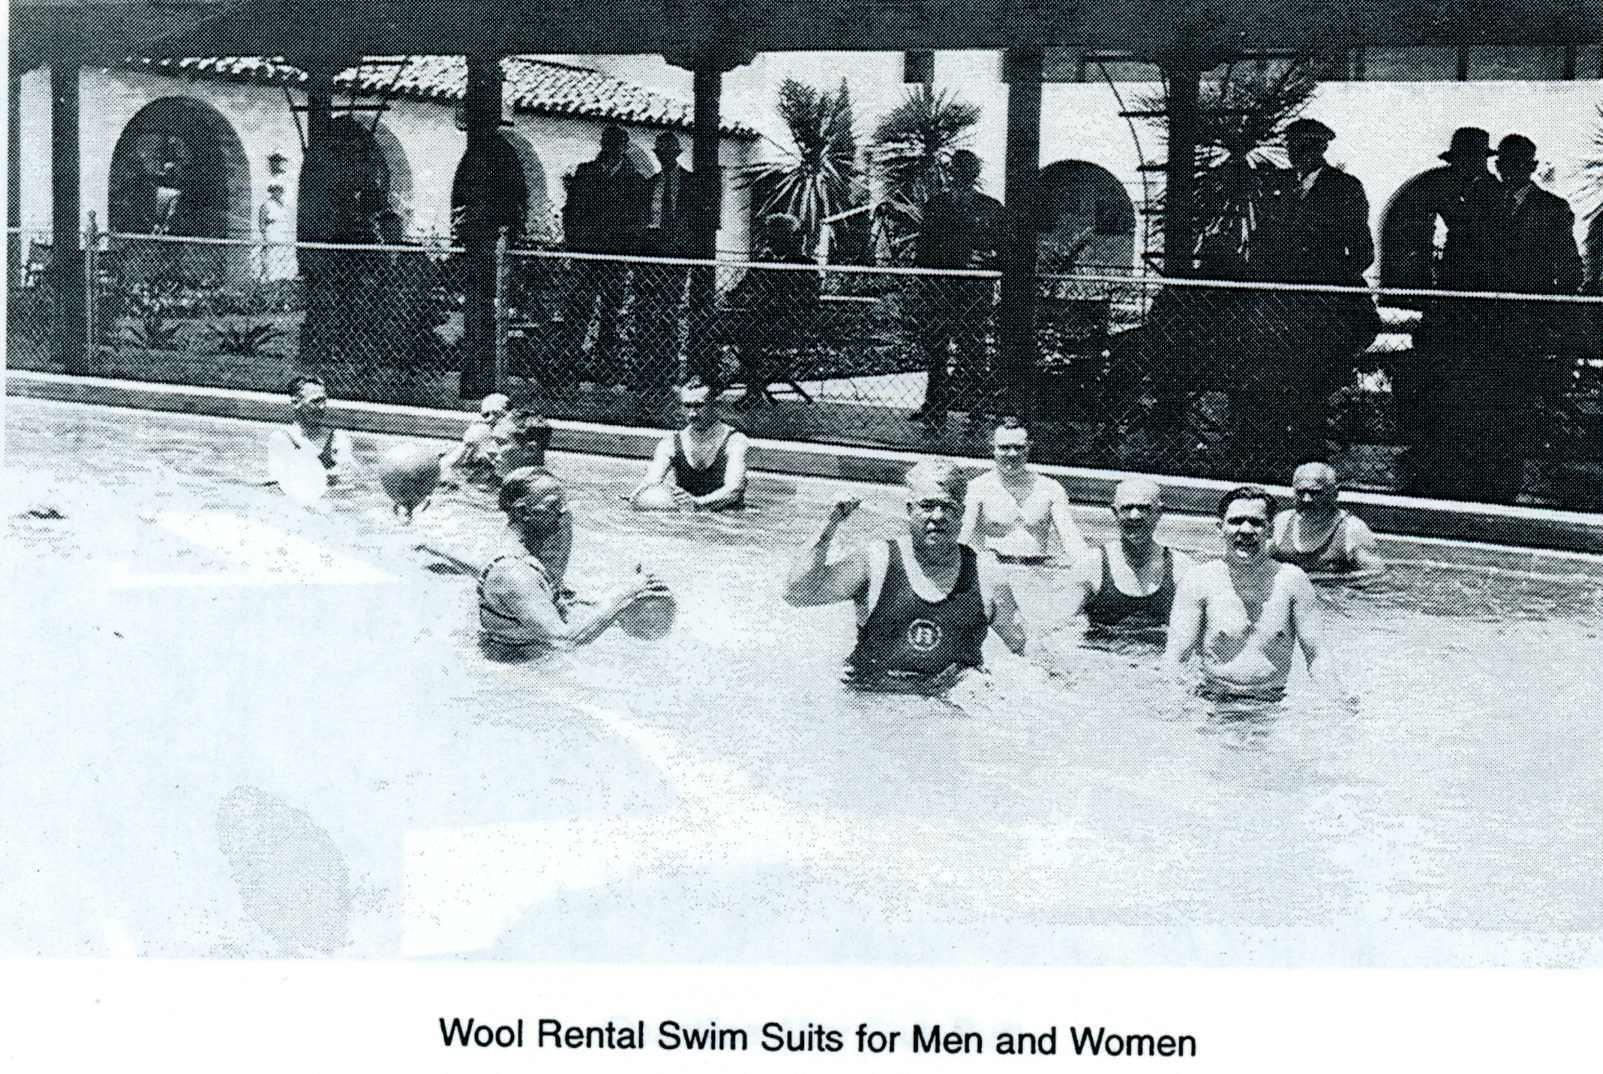 Hollywoodrivierabeachclubpool.jpg